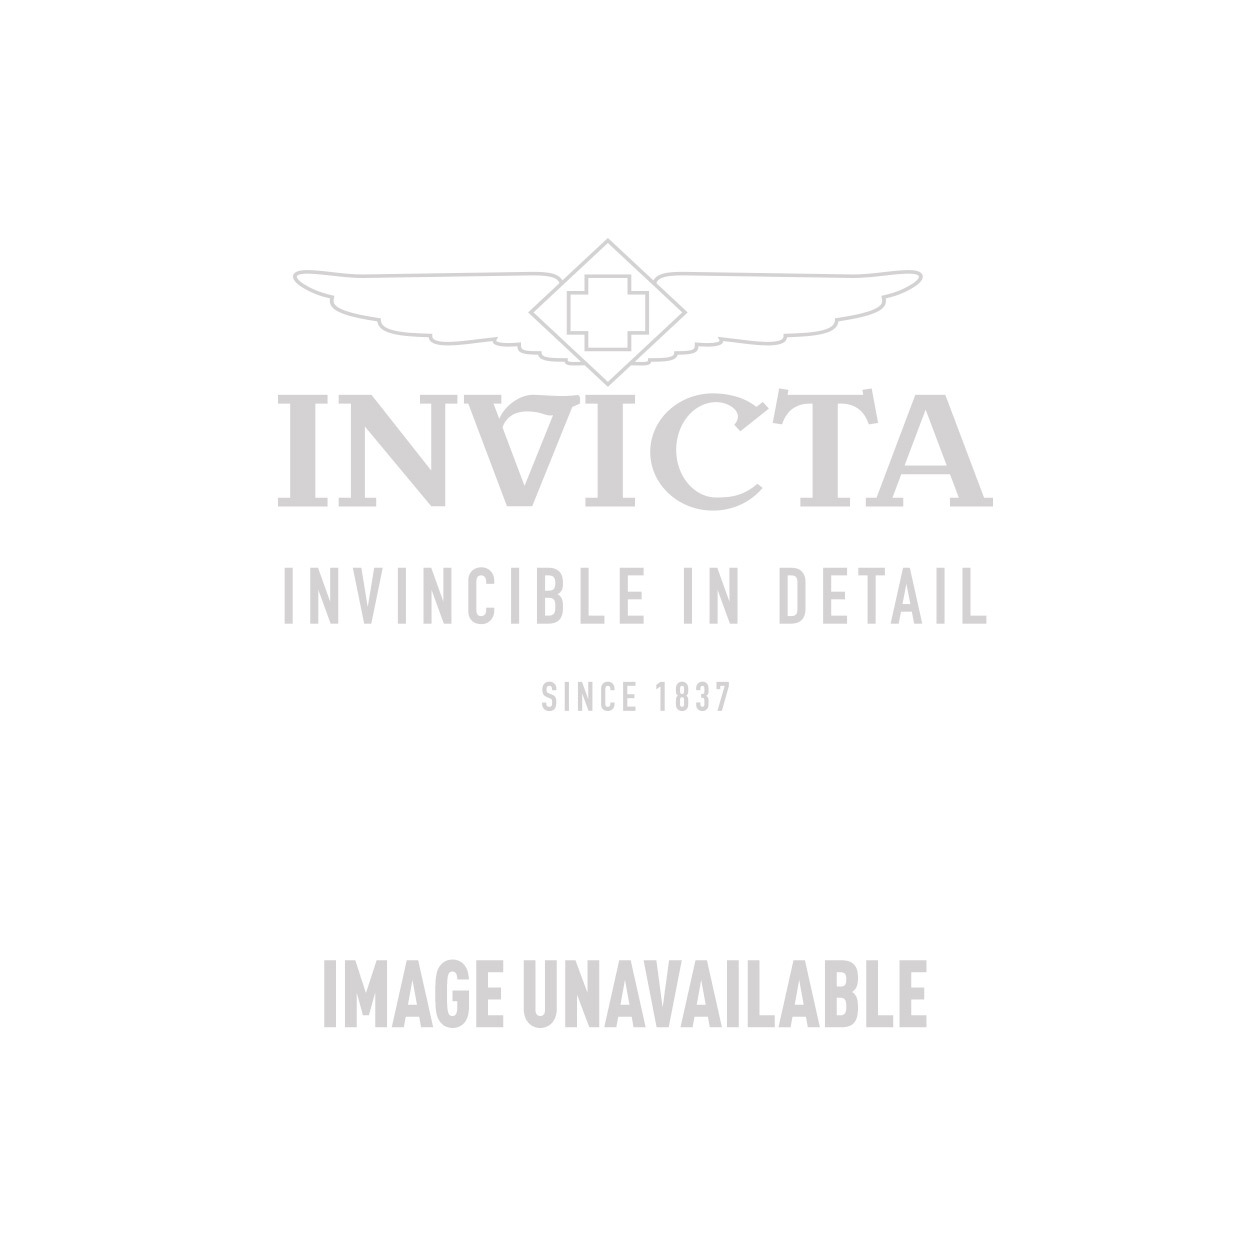 Invicta S. Coifman Swiss Movement Quartz Watch - Gold case with Gold tone Stainless Steel band - Model SC0128